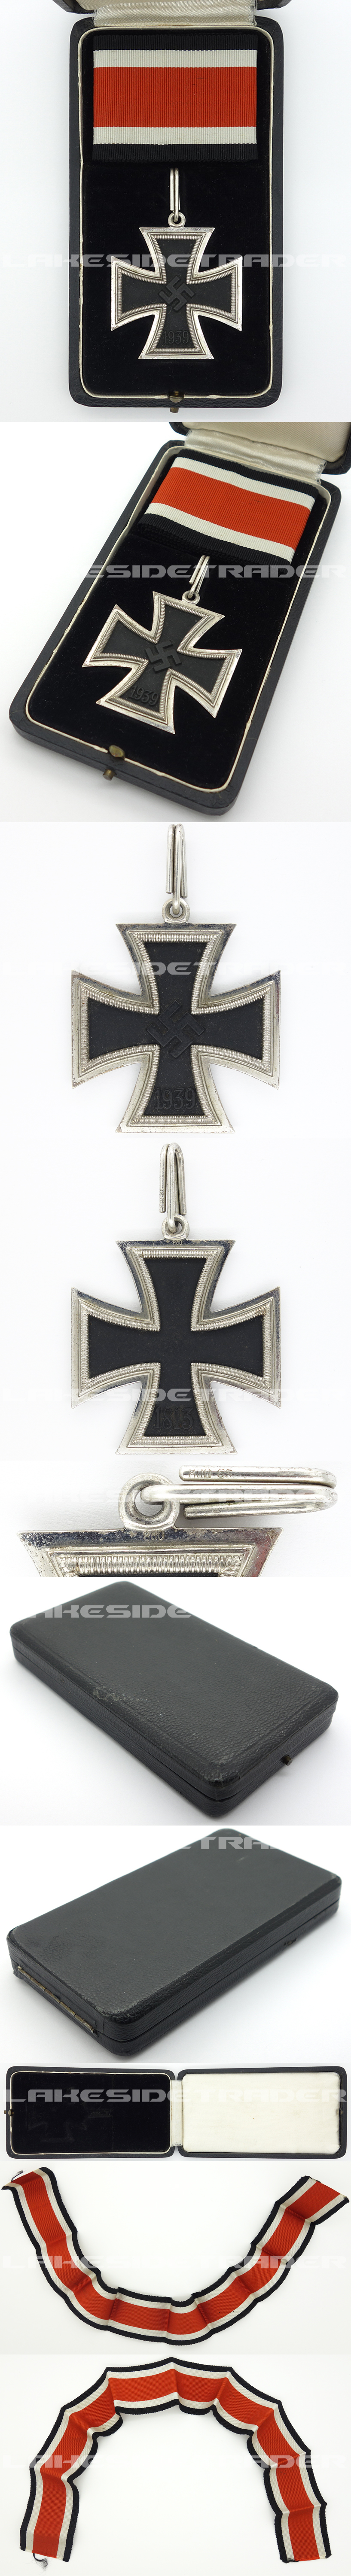 Cased Knights Cross by Klein & Quenzer